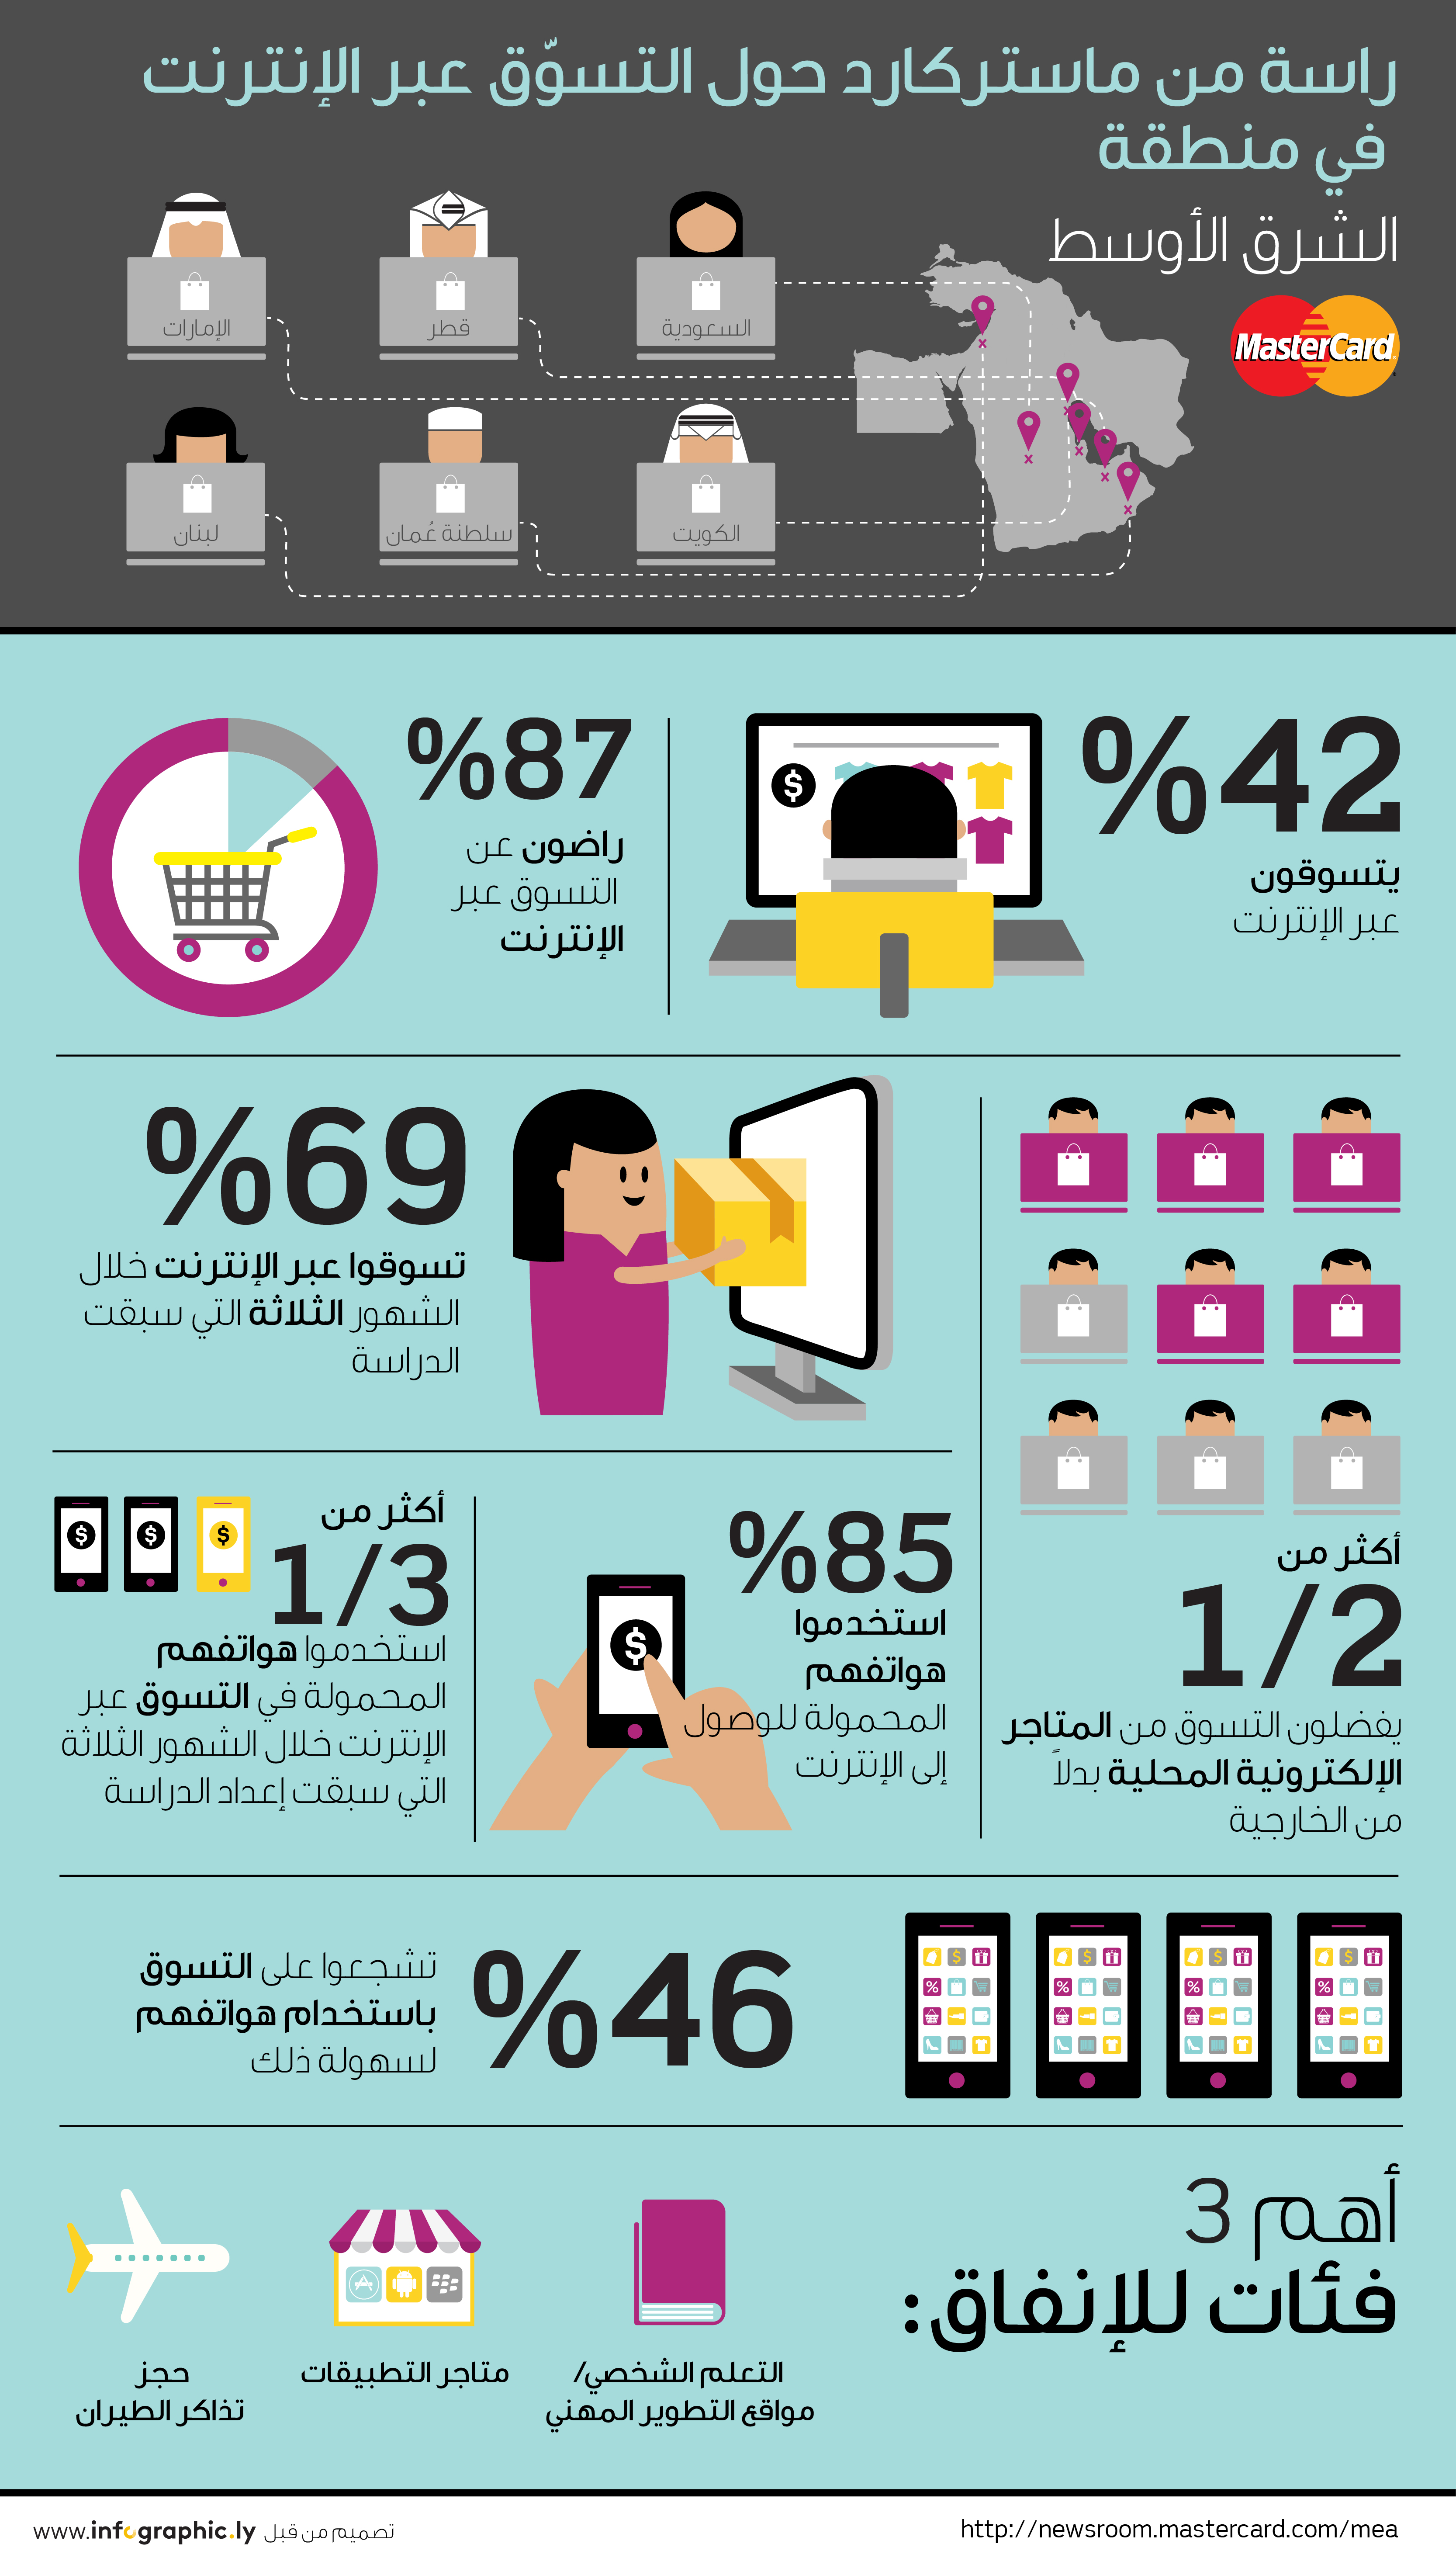 MasterCard Online Shopping Infographic 2015 - Arabic